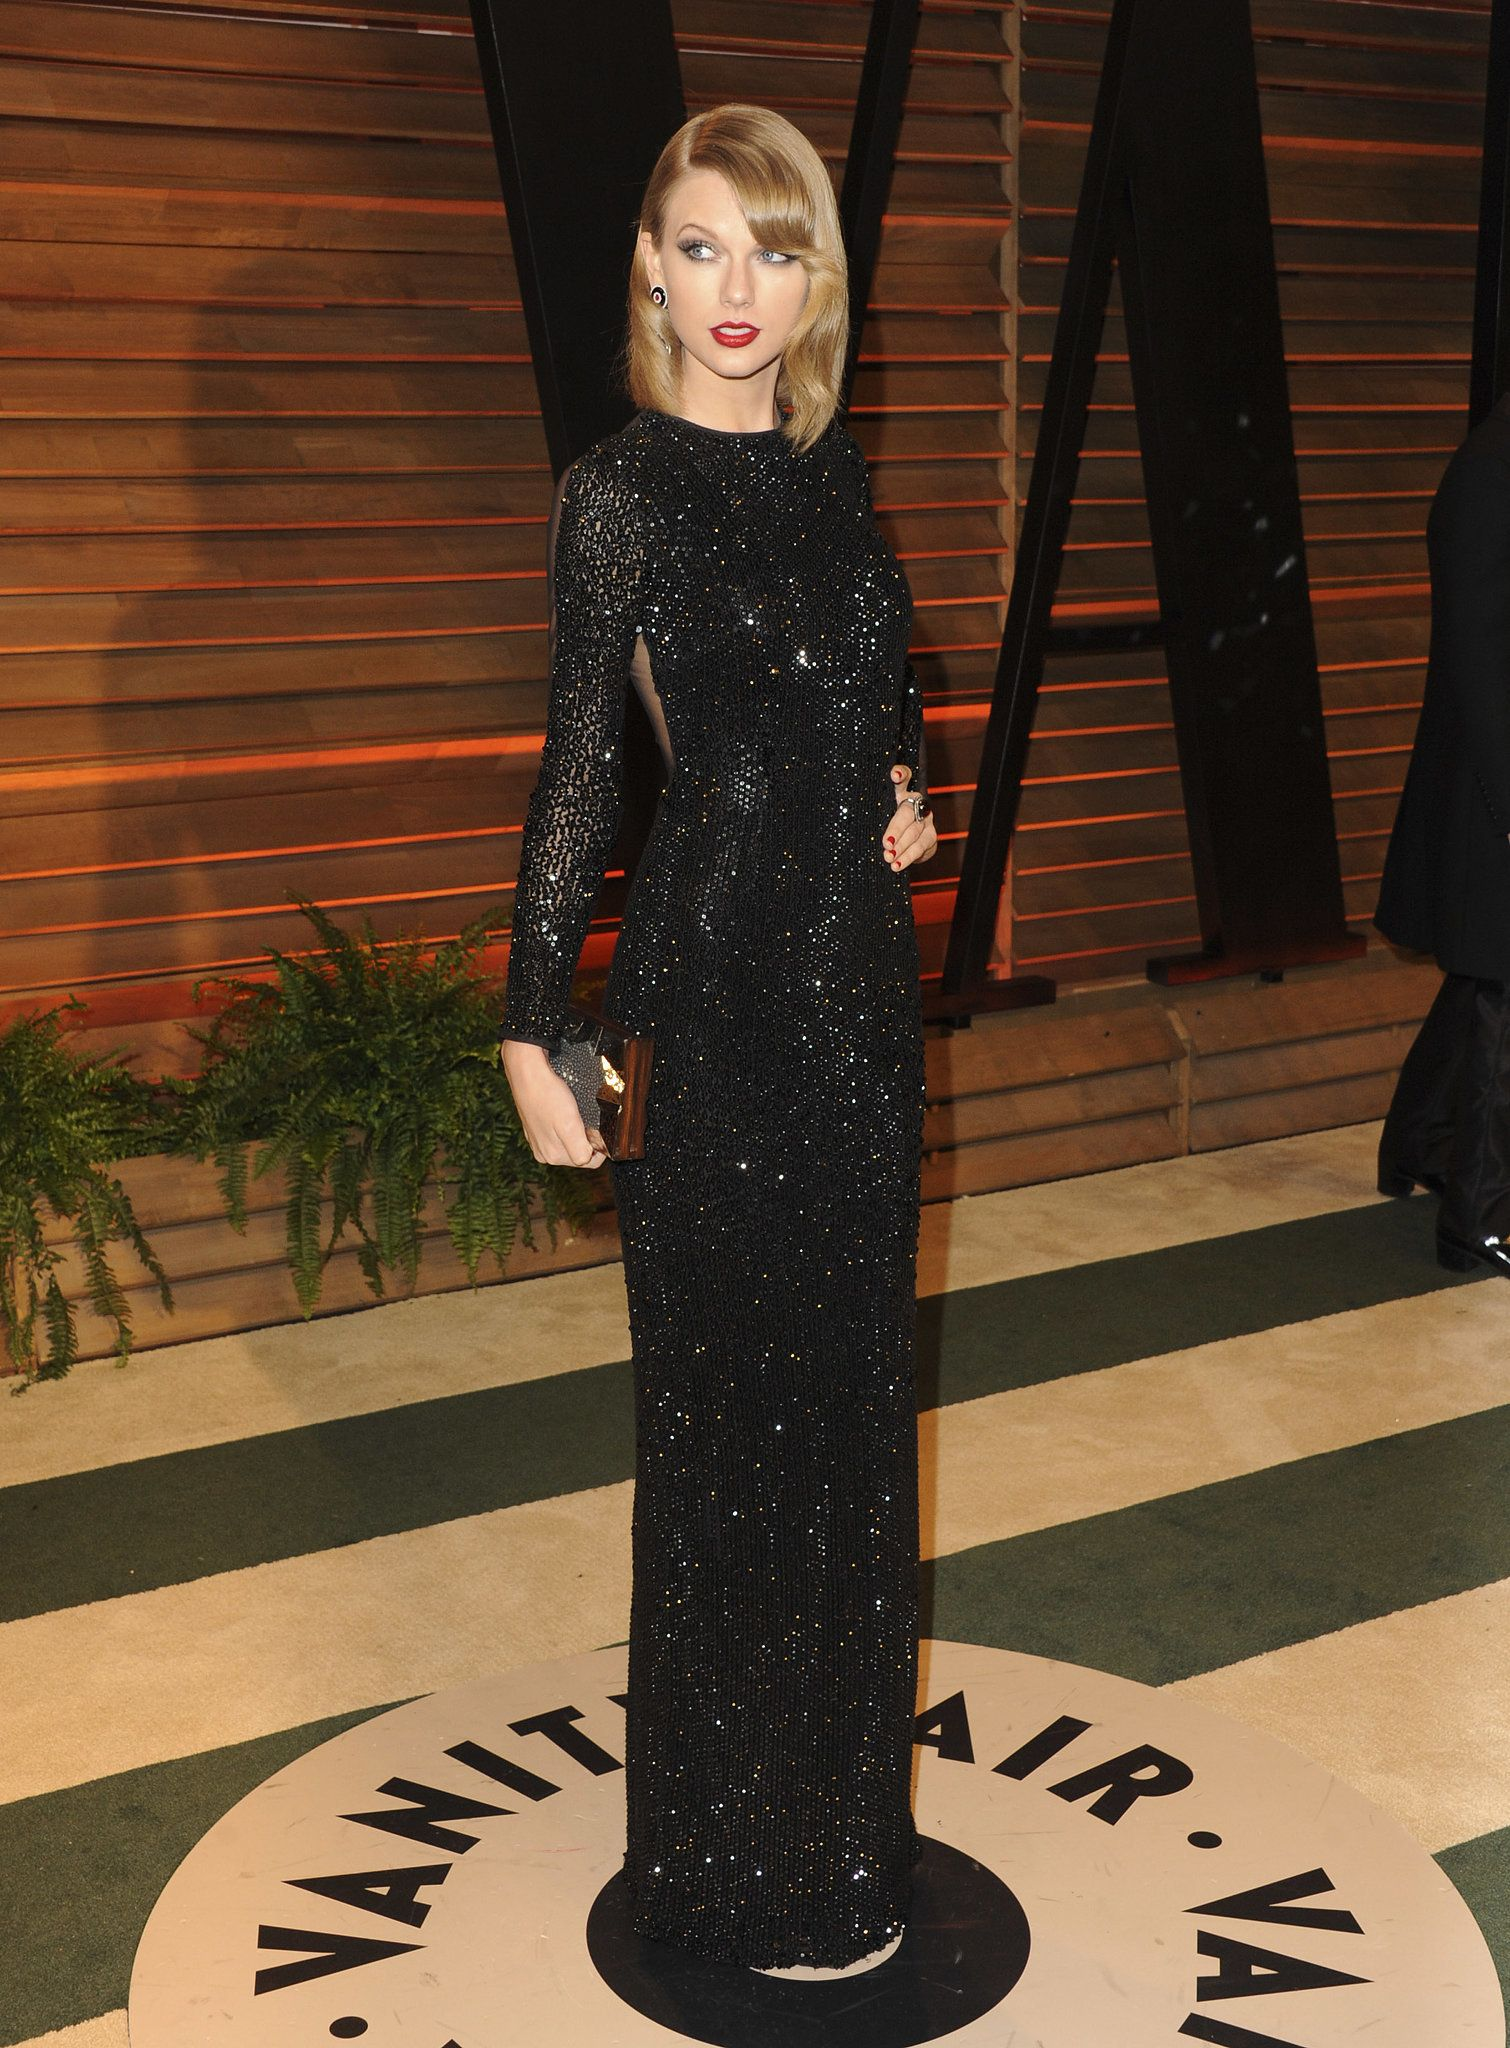 Black dress with red lipstick - Taylor Swift At The Vanity Fair Oscars Party Long Black Dressesdress Blackblack Gownsbright Red Lipstickblack